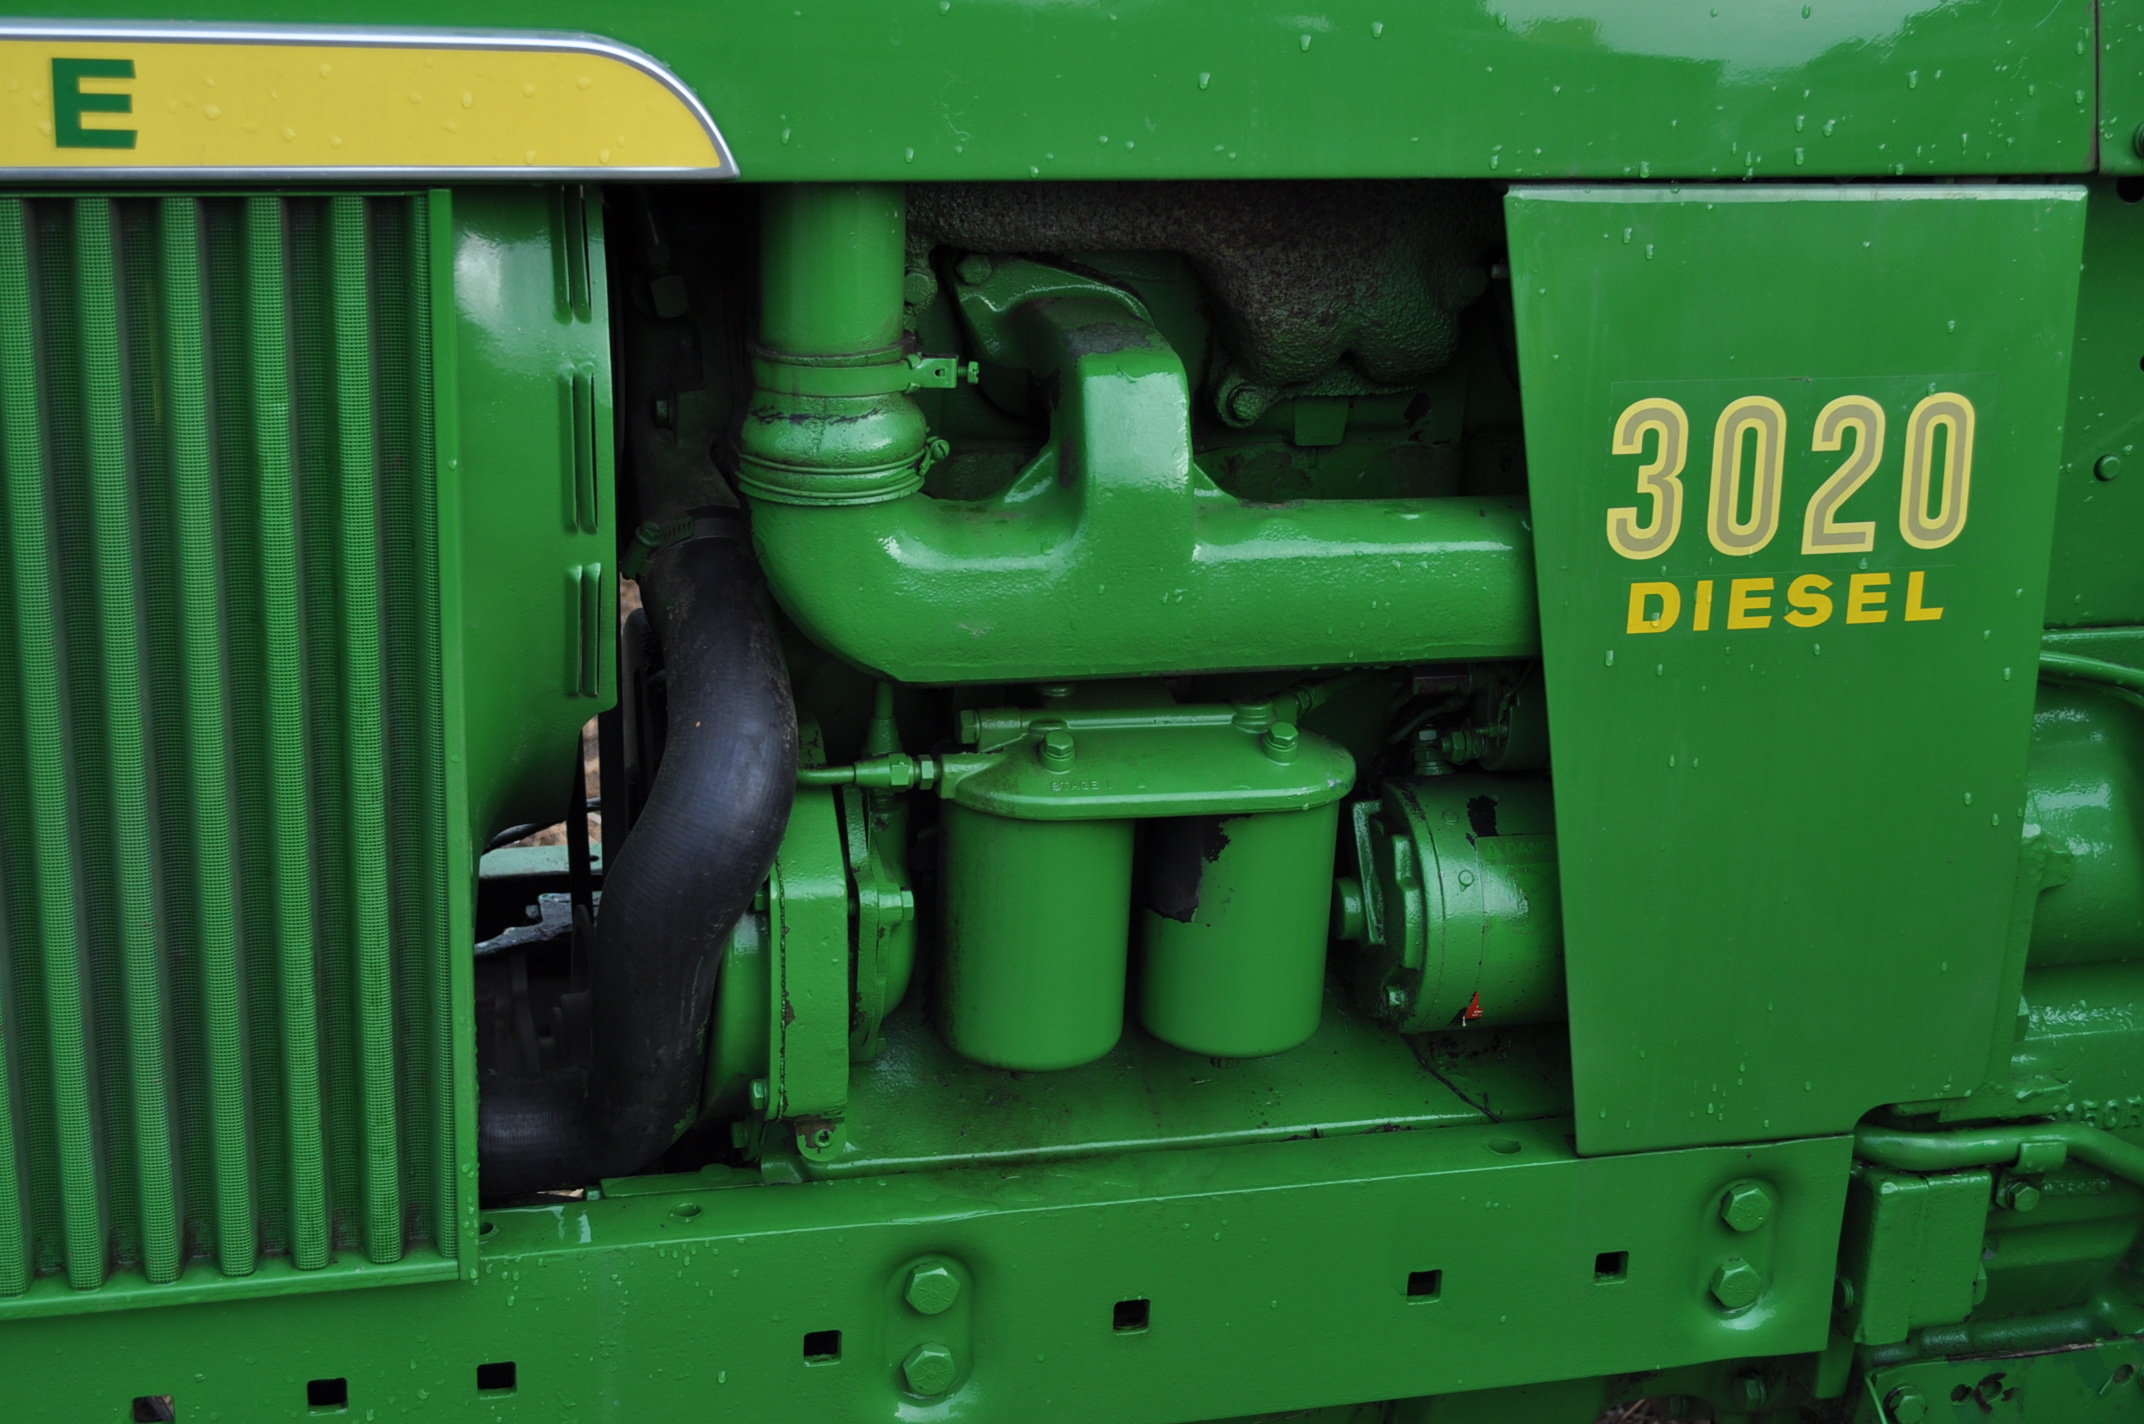 John Deere 3020 tractor, diesel, 18.4-34 rear, clamp on duals, 11L-15 narrow front, Syncro, 2 - Image 9 of 15